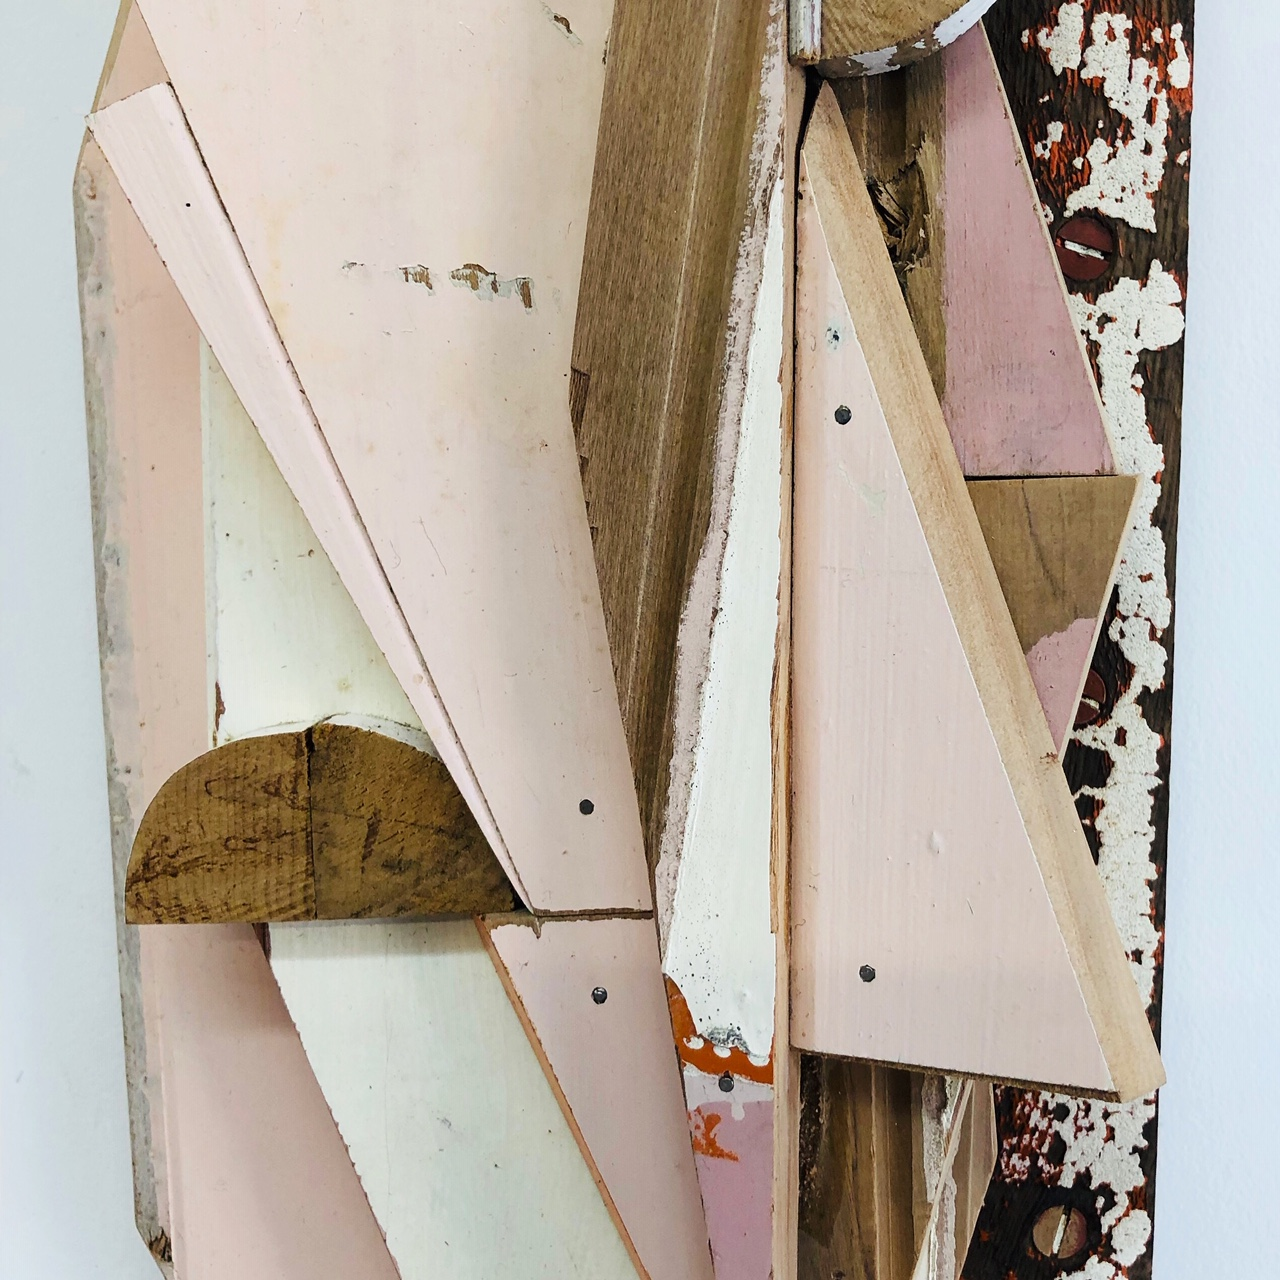 Detail of 'Pink BIts', 2019, salvage wood assemblage. Designed to be wall hung, Measures 60 x 18 x 8 cm. wastemedia